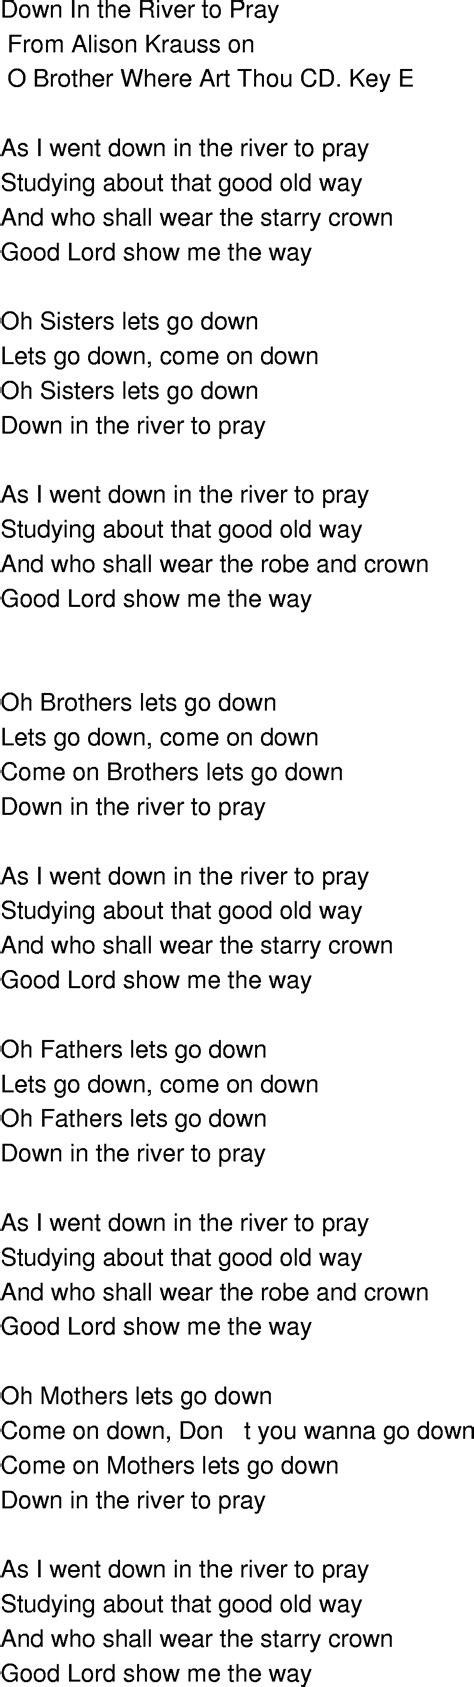 by this river testo time song lyrics in the river to pray